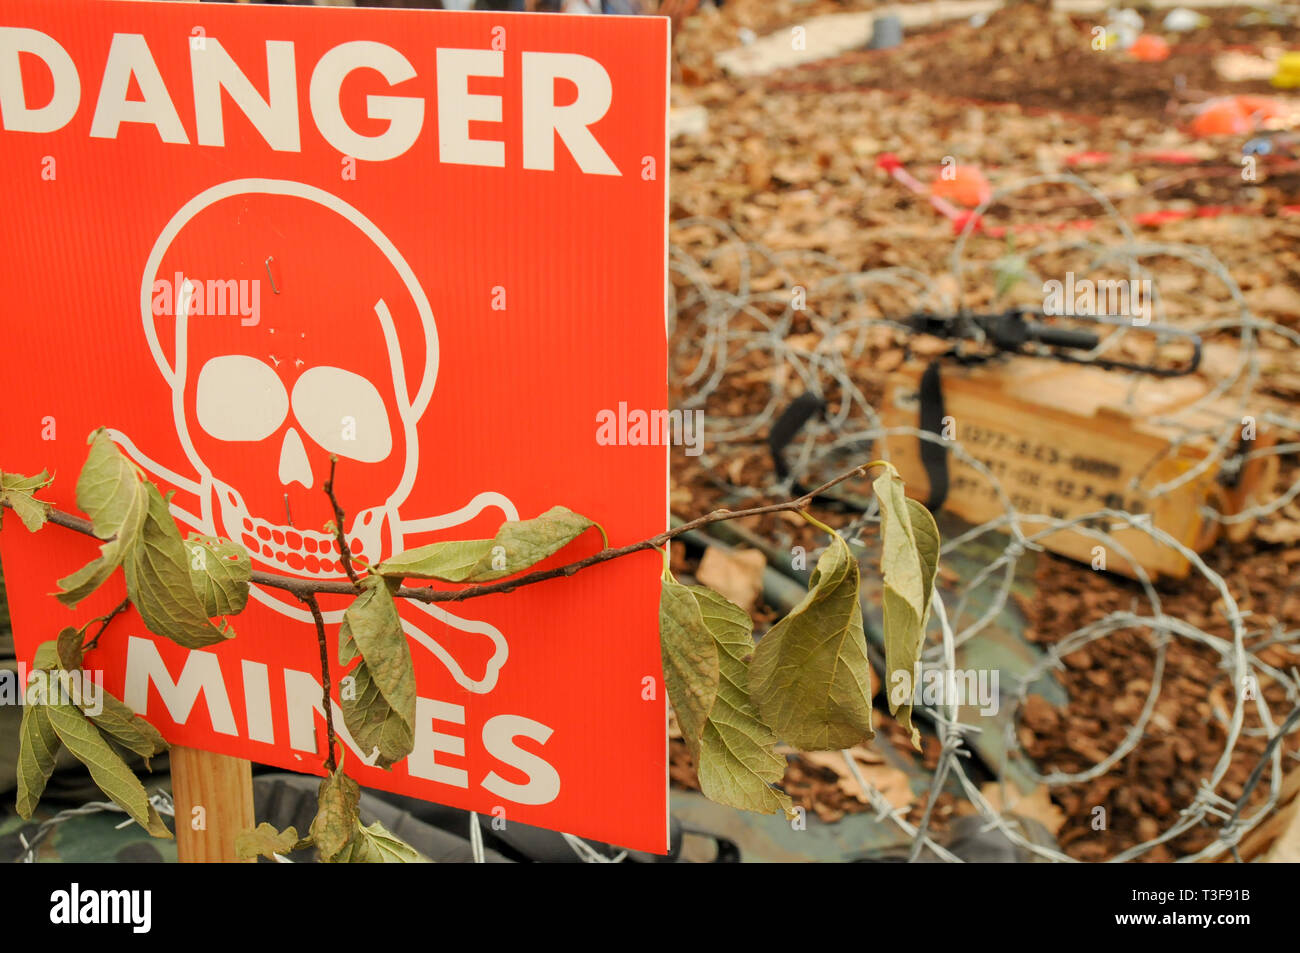 Cluster Bomb Photos & Cluster Bomb Images - Page 4 - Alamy